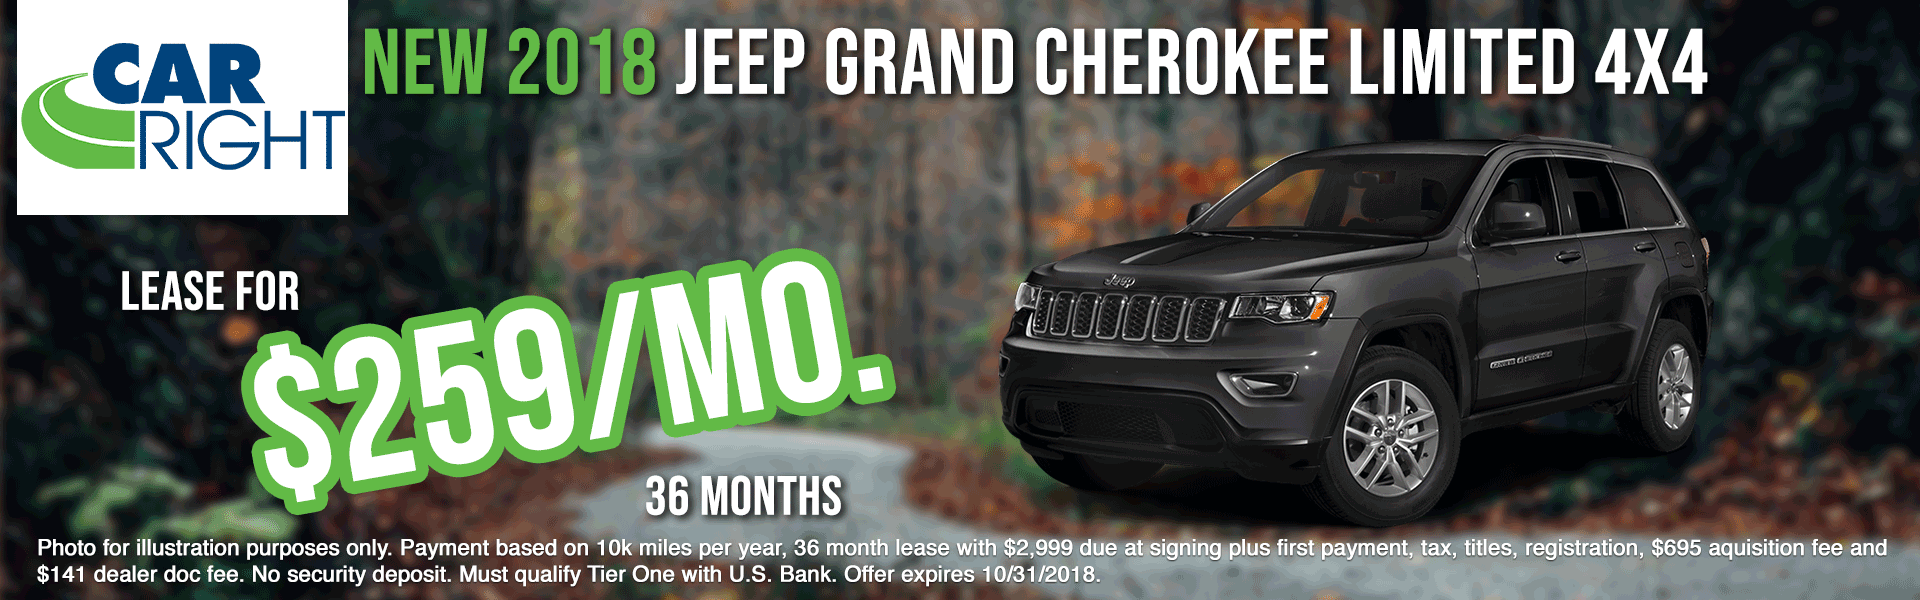 carright new vehicle specials carright specials chrysler specials dodge specials jeep specials ram specials lease specials moon township buy your car right the right way to buy a car G2304---2018-JEEP-GRAND-CHEROKEE-LIMITED-4X4-OCT-BIG